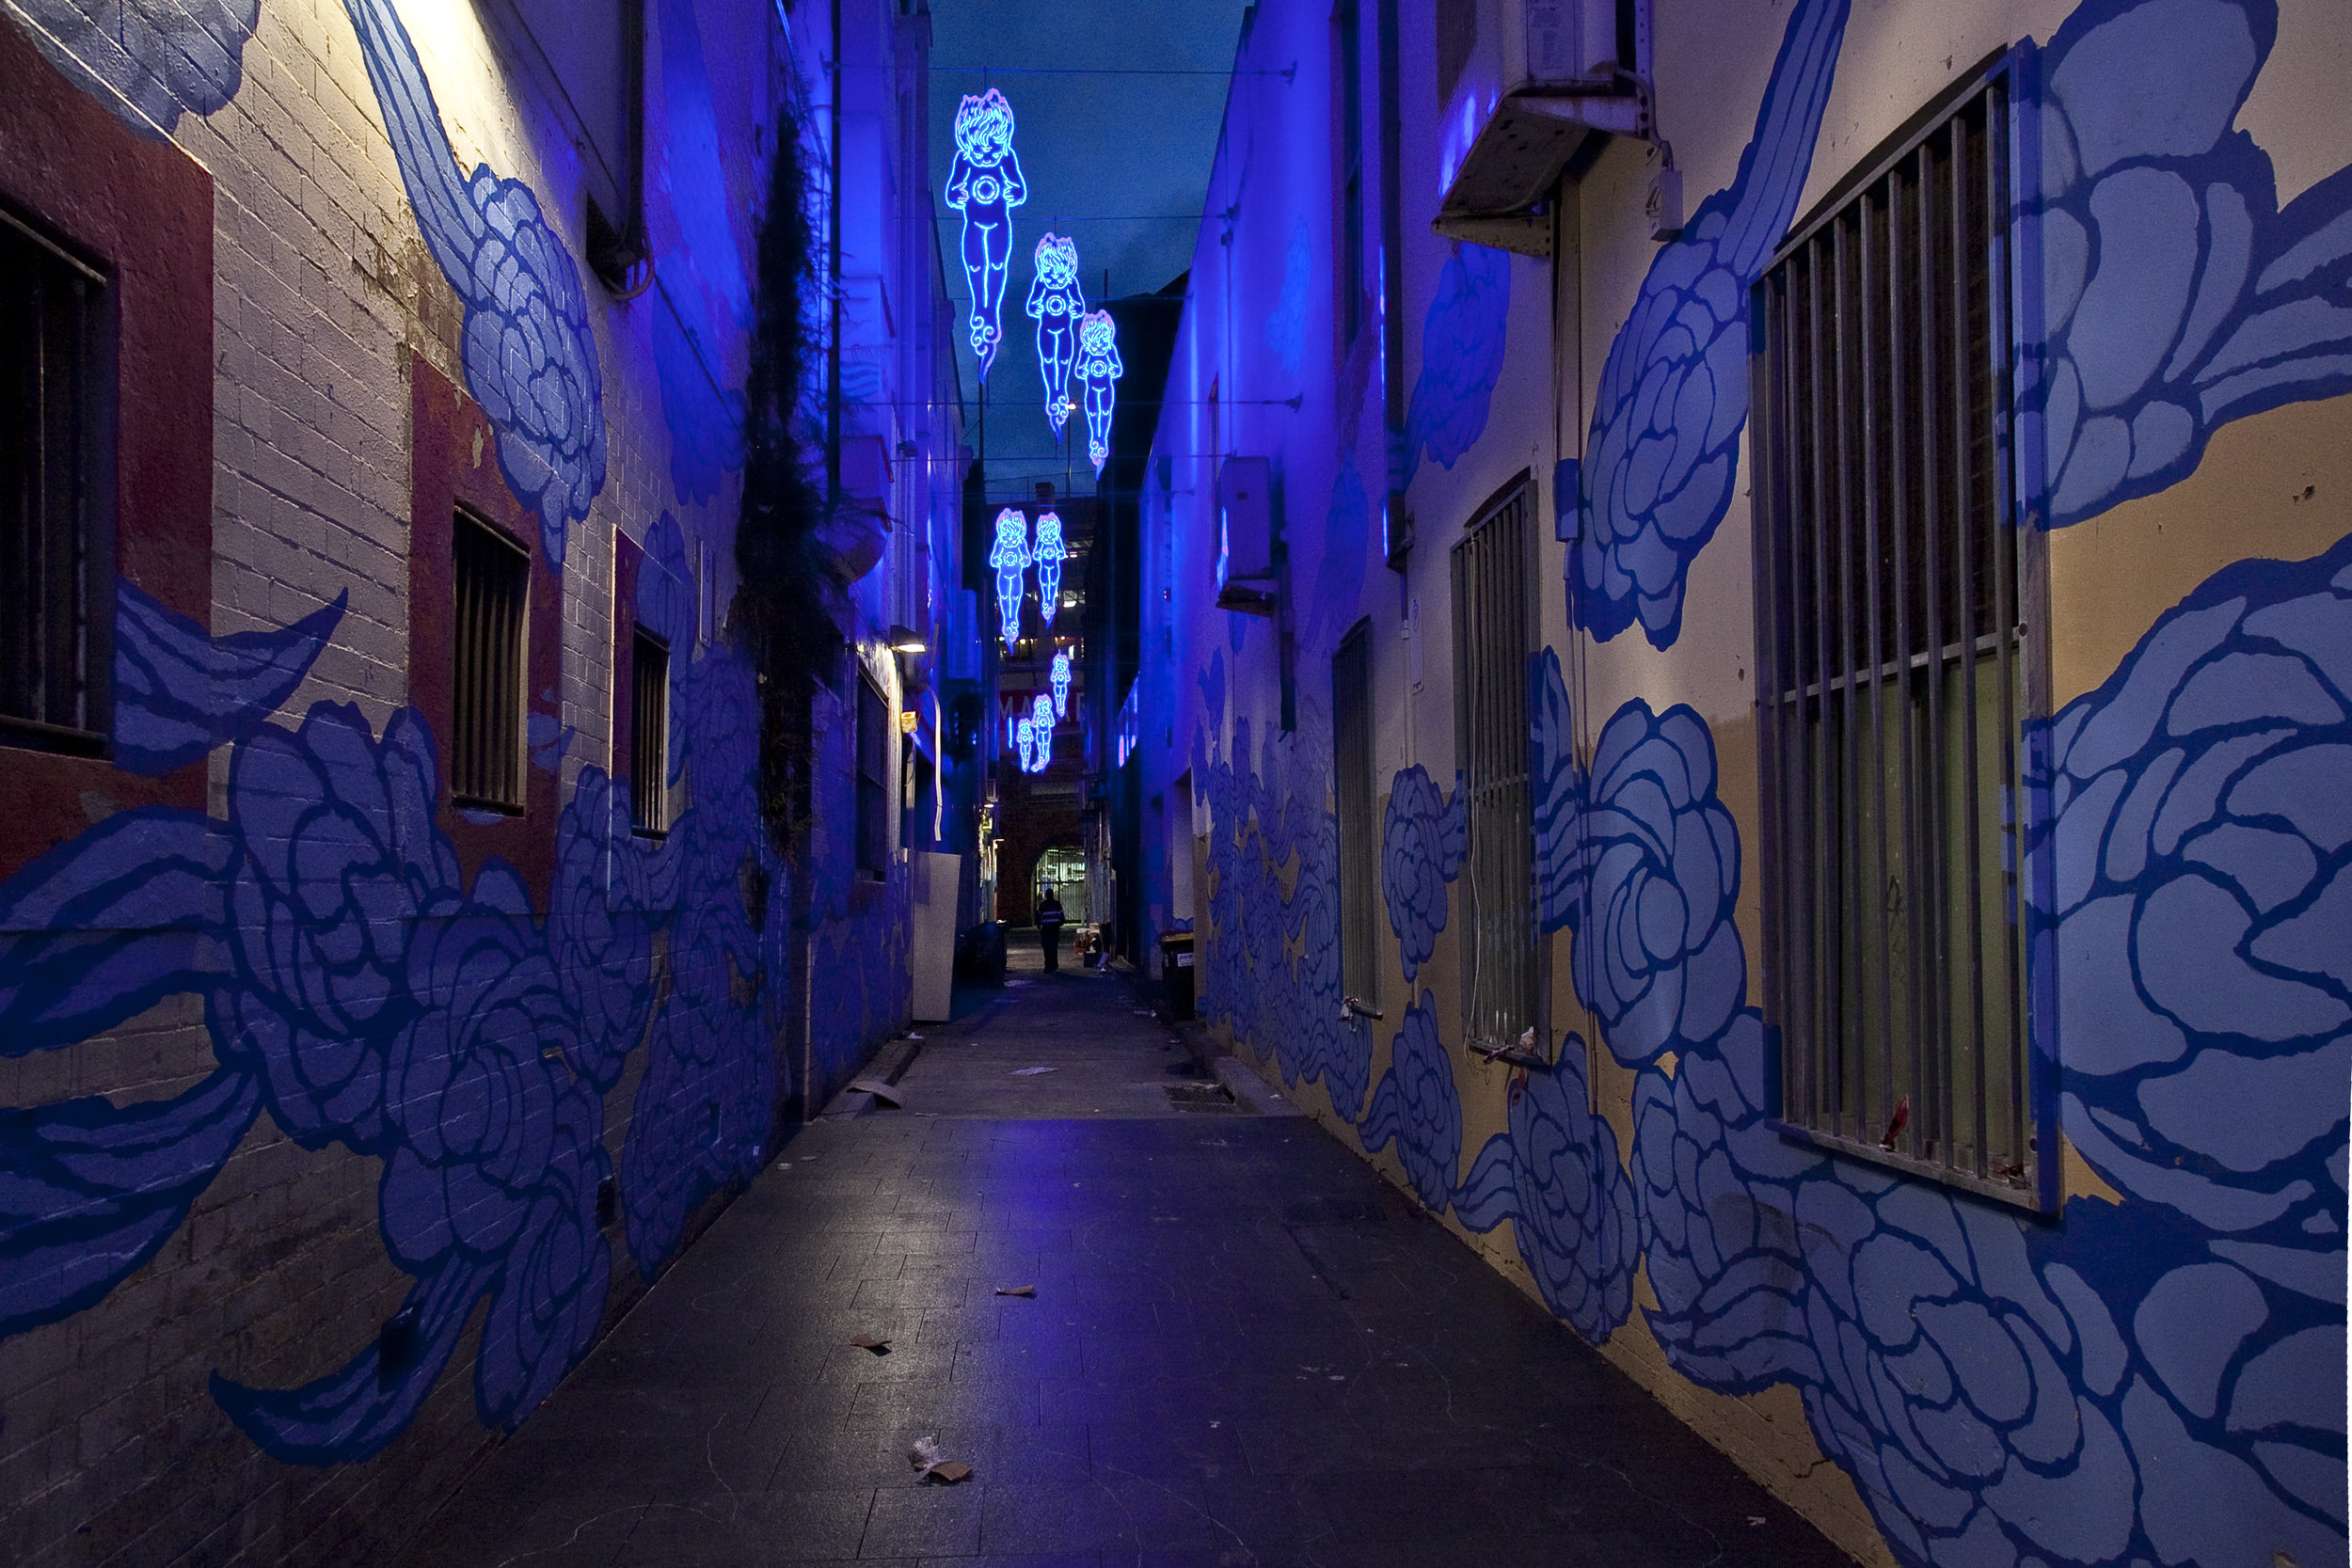 Jason's mural transforms into a light installation at night.